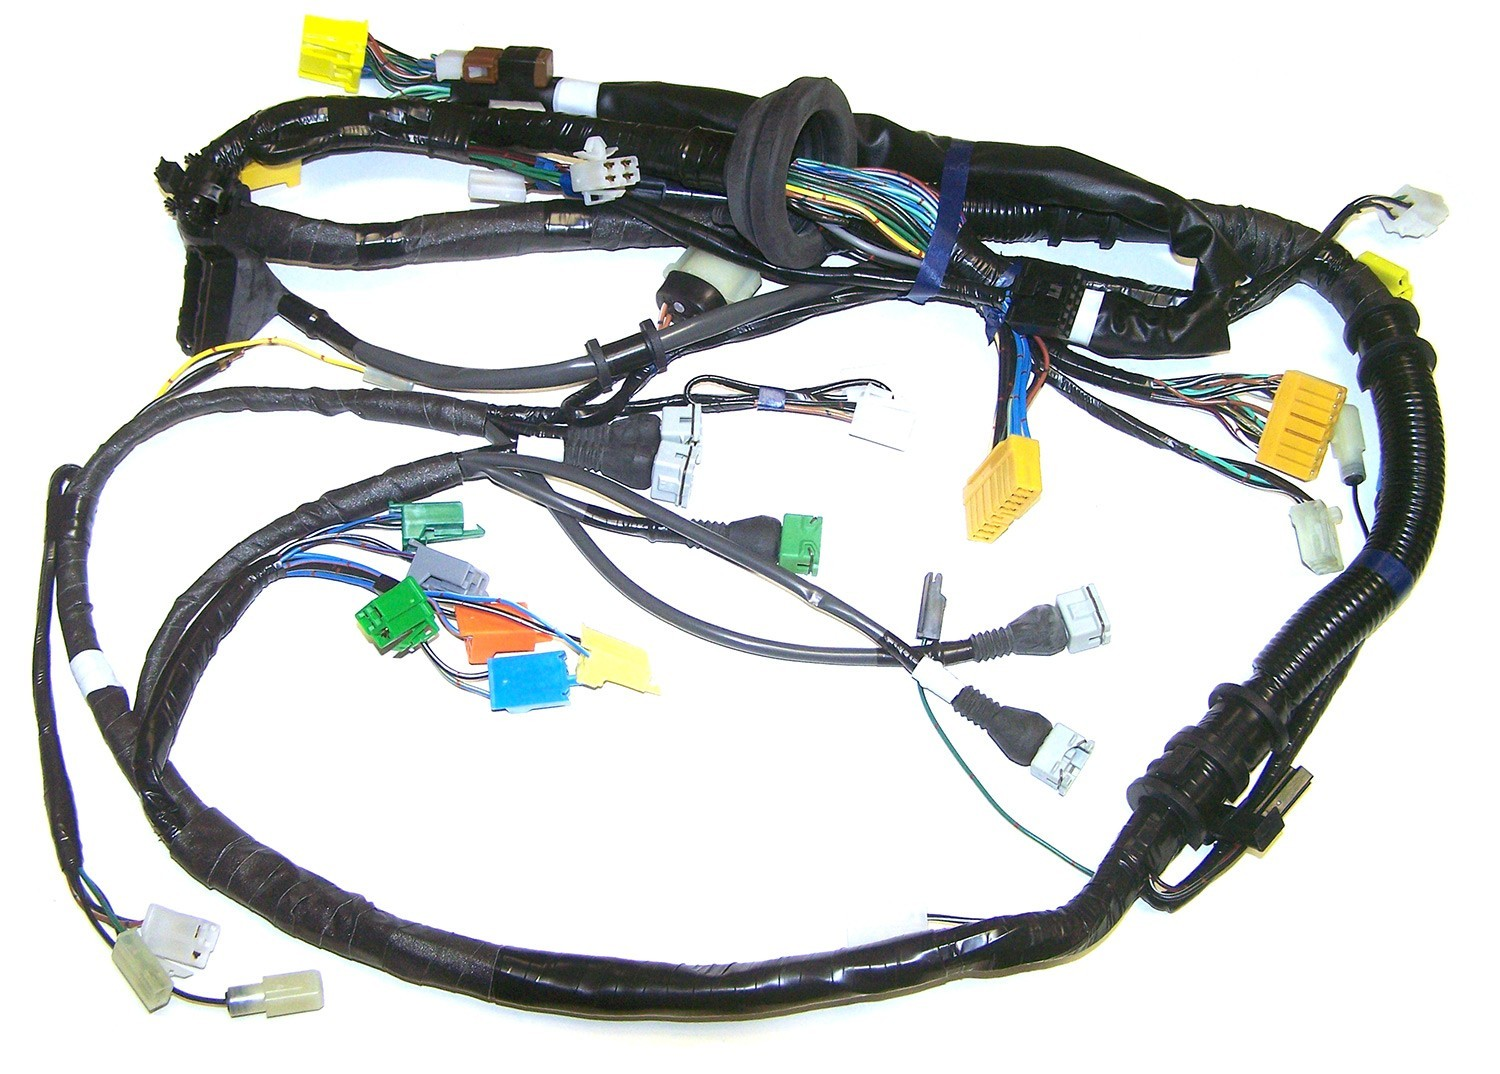 87 88 turbo rx7 engine wiring harness n332 18 051k